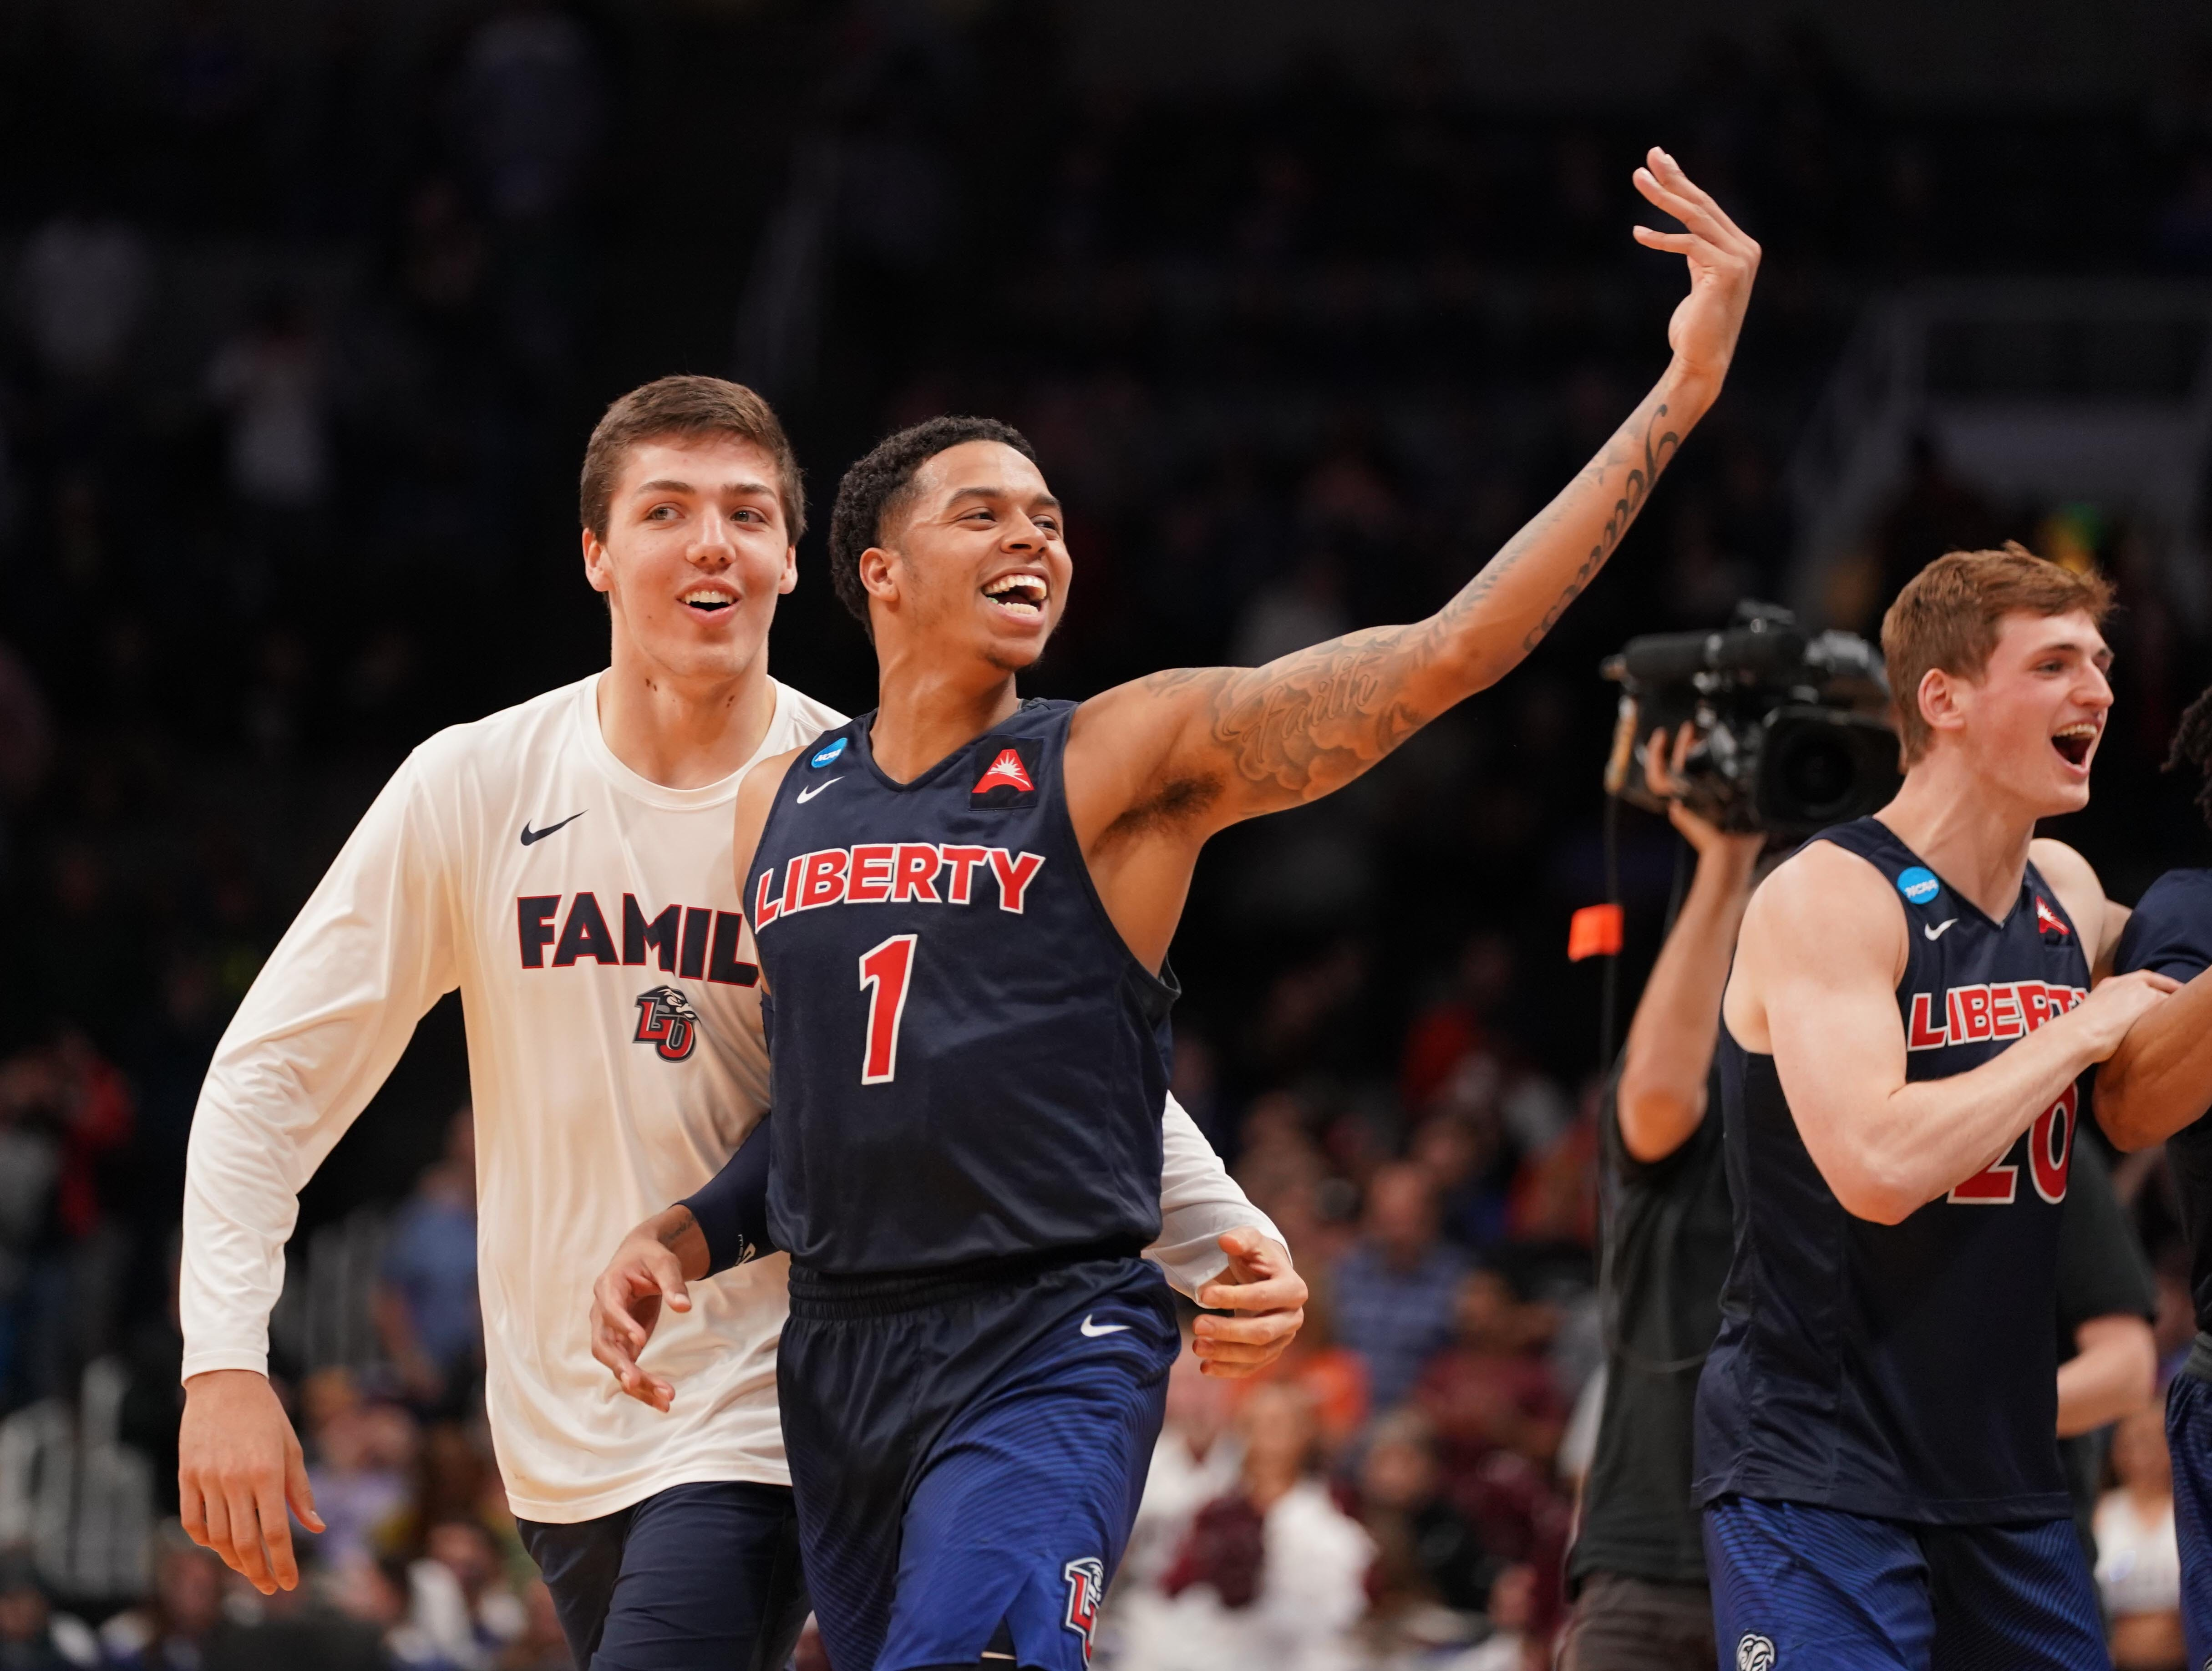 Caleb Homesley flips script from coach's doghouse to Liberty's NCAA tournament upset hero